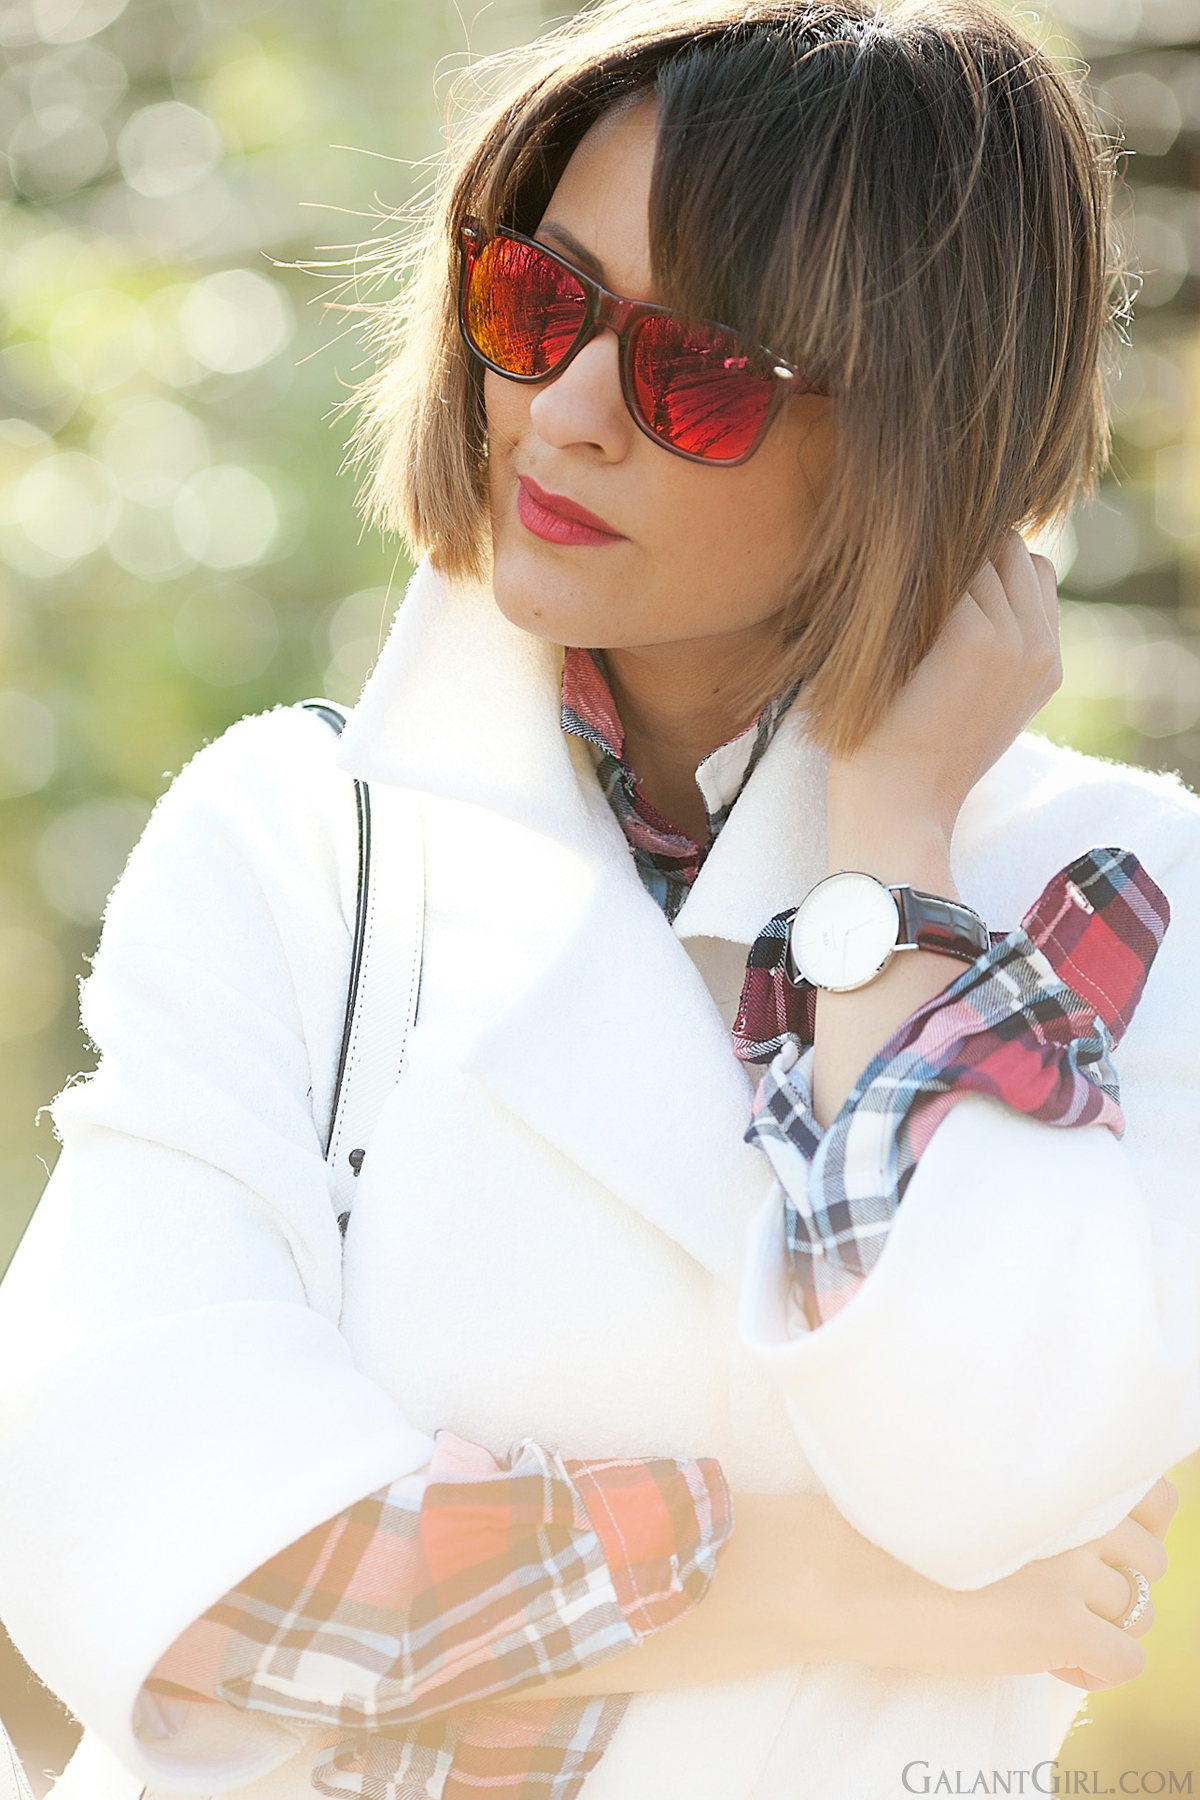 red mirror sunglasses and daniel wellington watch on galantGirl.com for editorial